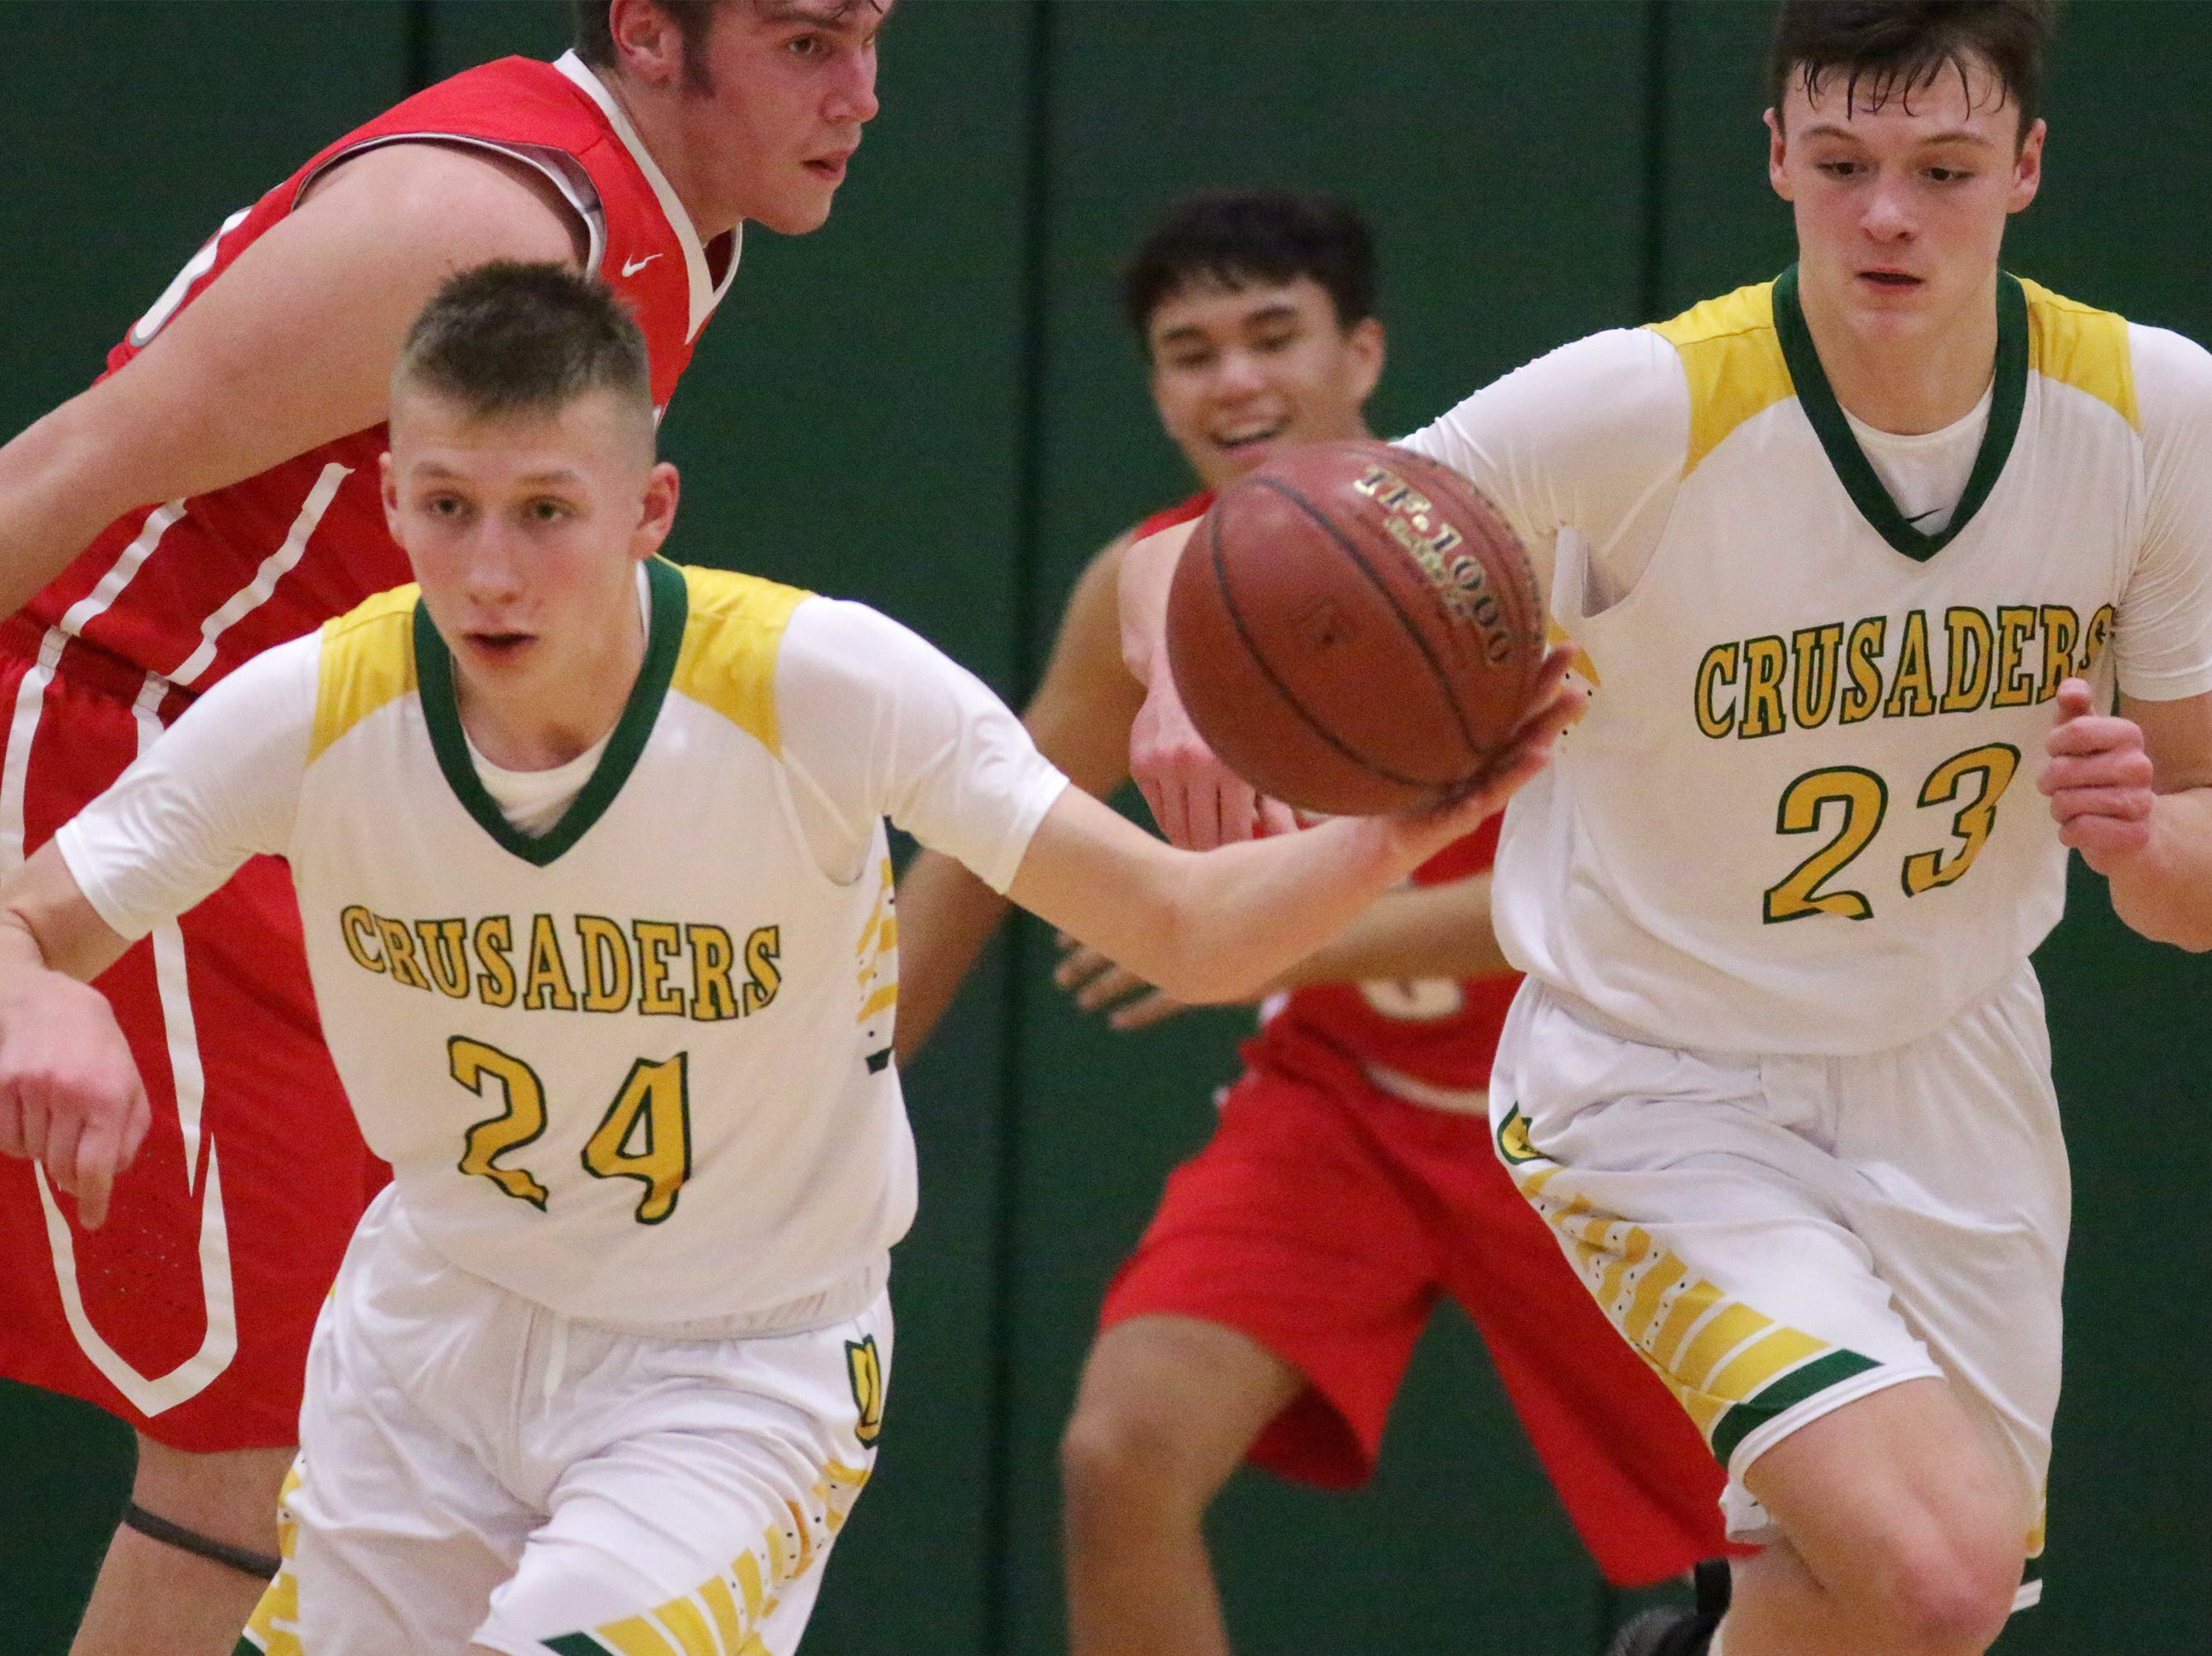 Sheboygan Lutheran's Casey Verghagen (24) drives the ball by Jacob Ognacevic (23) during their win against Manitowoc Lutheran, Friday, February 1, 2019, in Sheboygan, Wis.